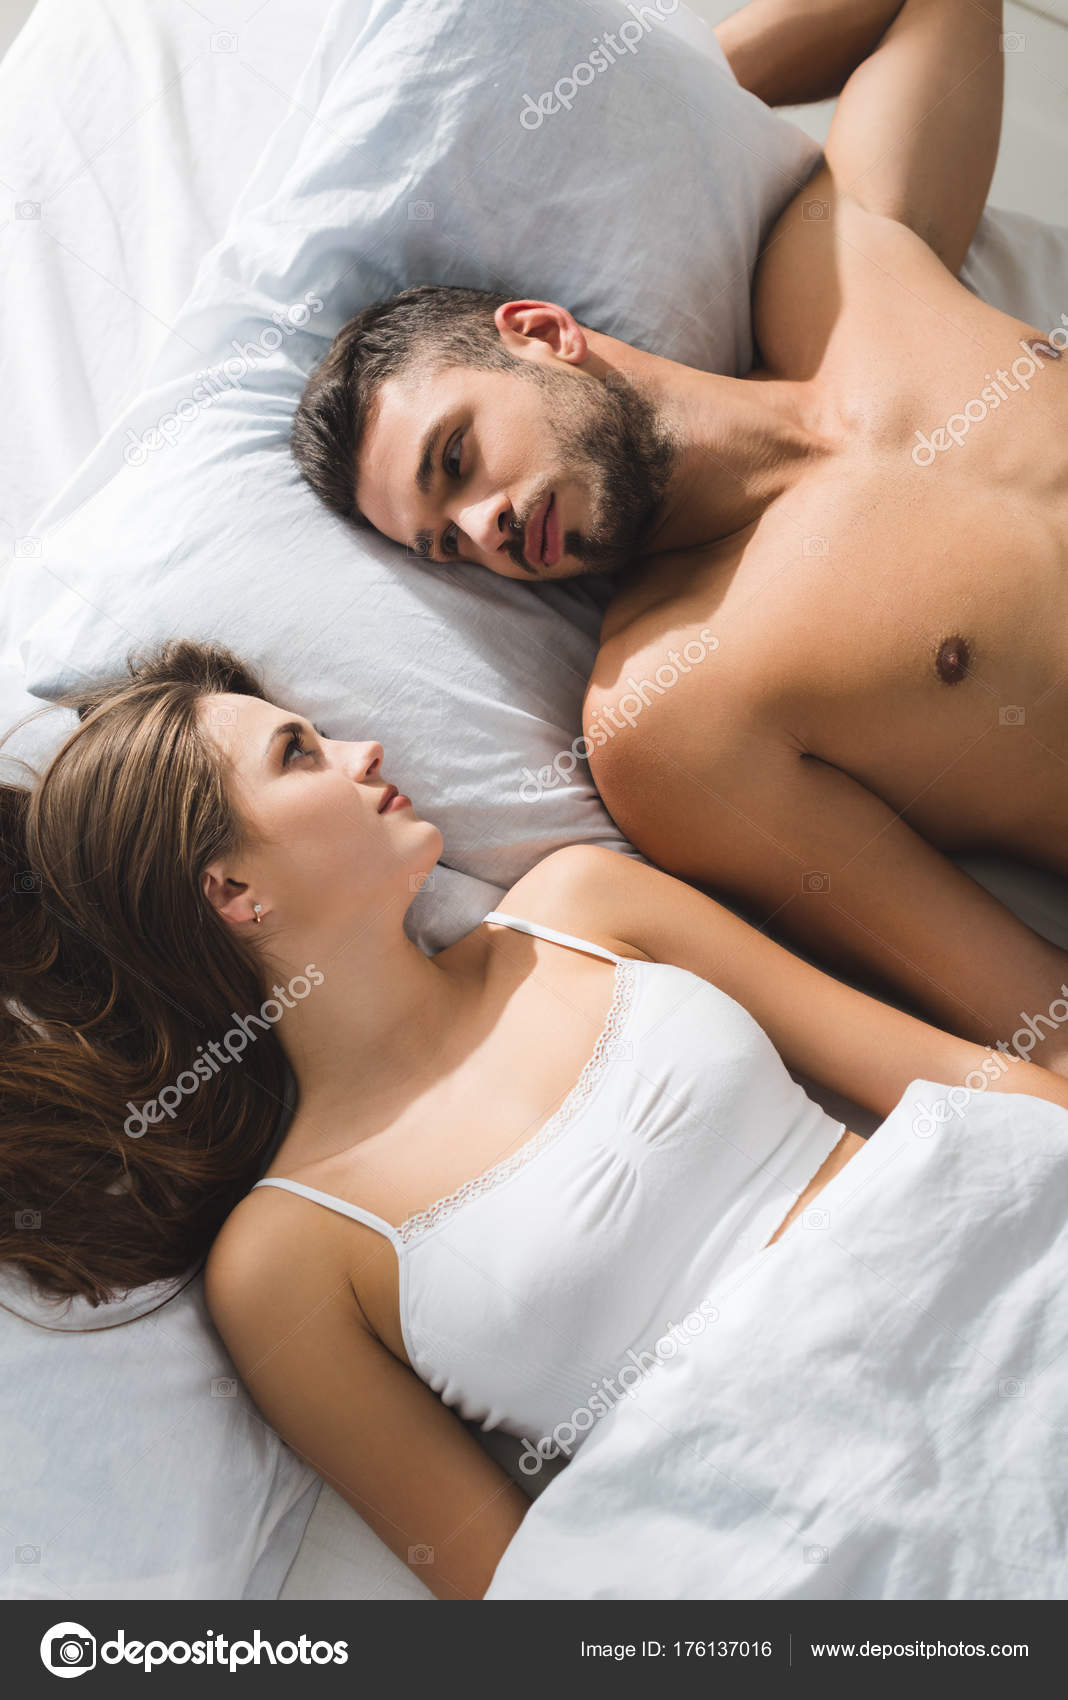 Top View Young Couple Lying Bed Looking Each Other Morning Stock Photo